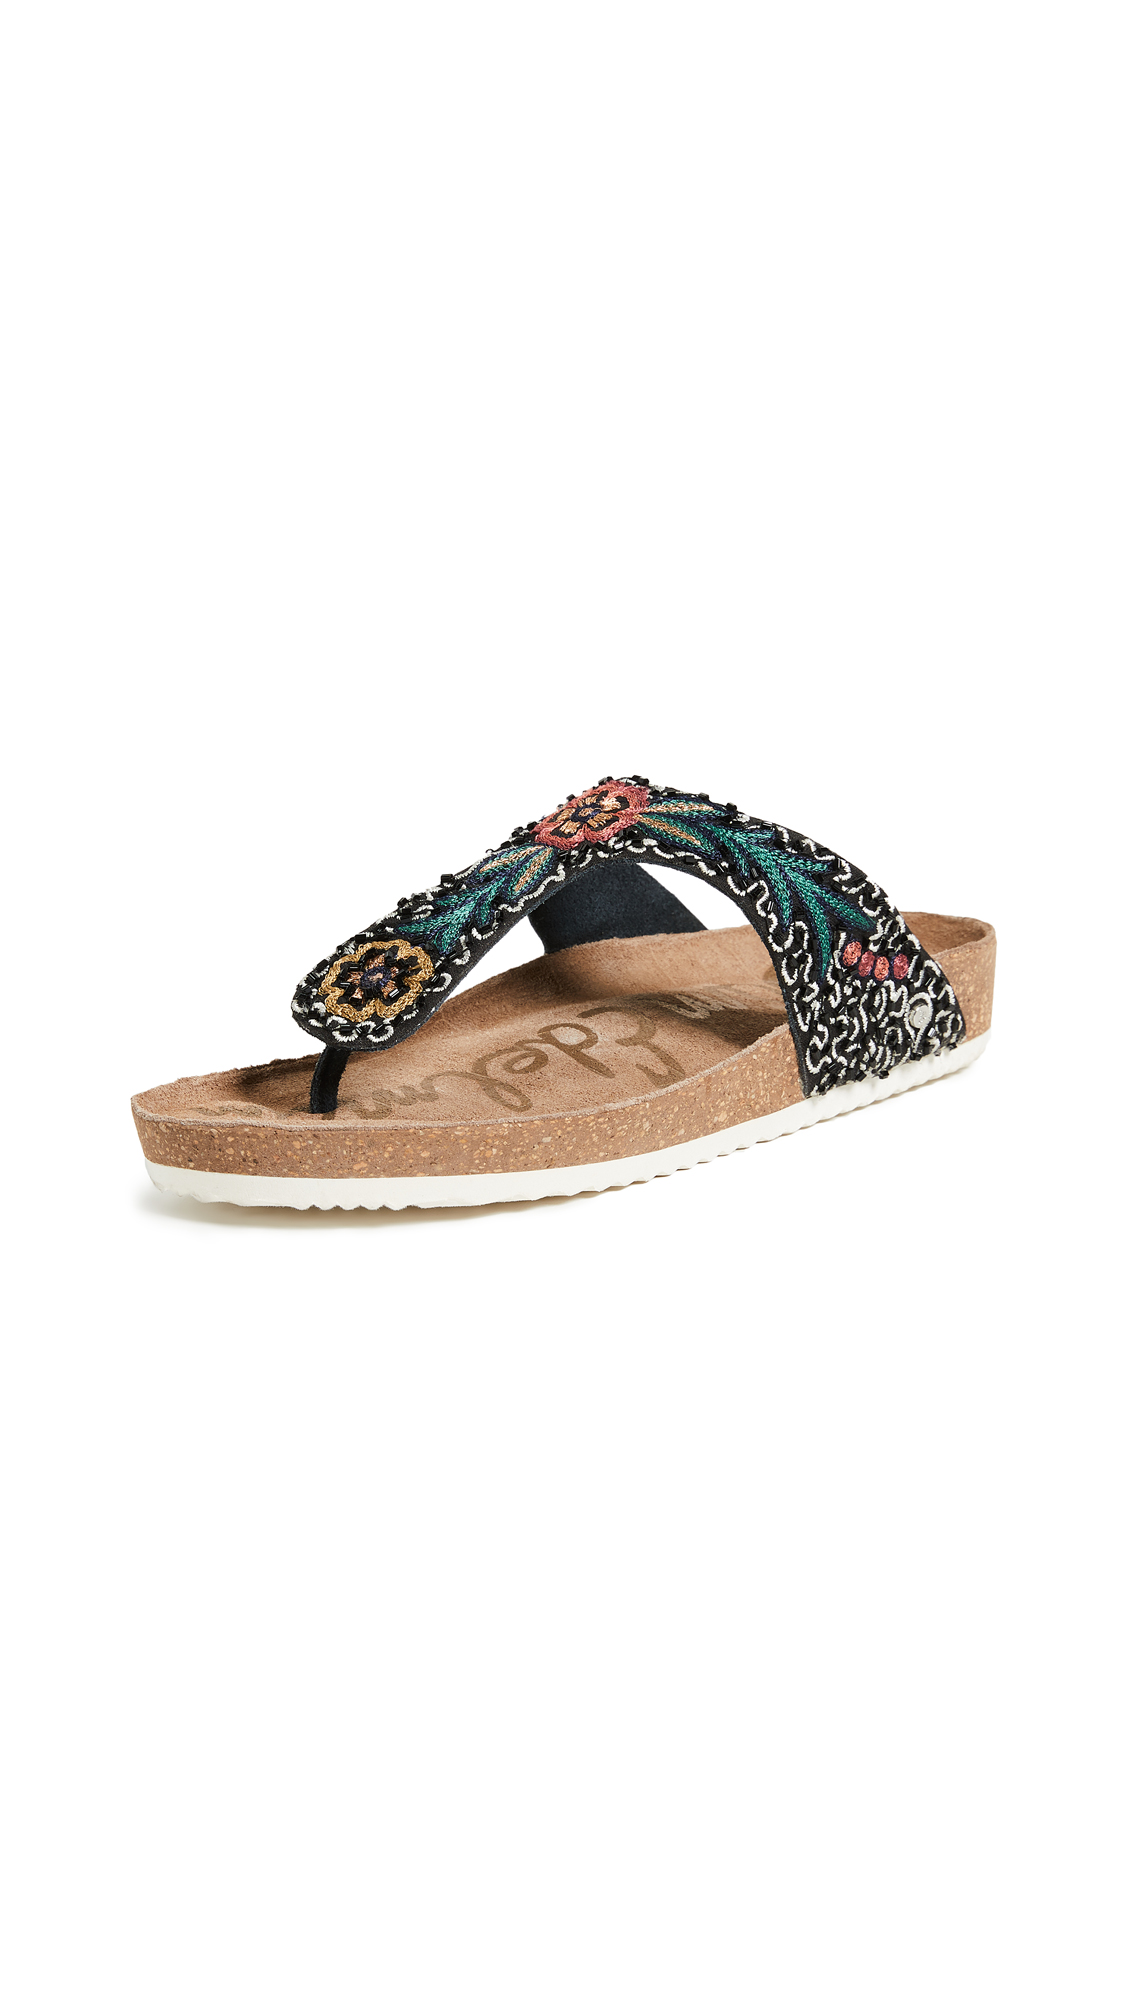 Sam Edelman Olivie 3 Sandals - Black/Black Multi